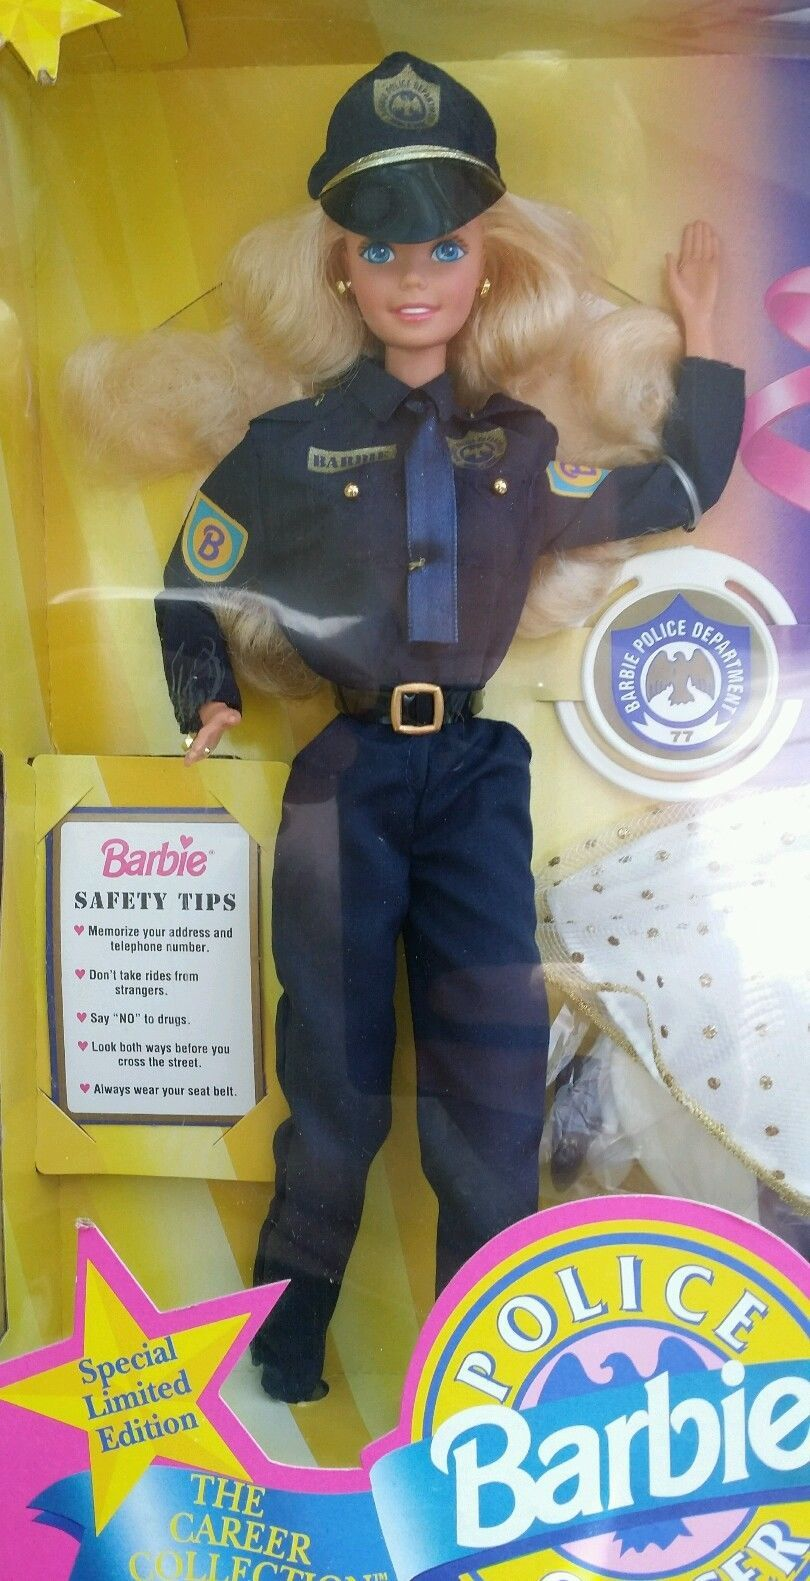 Barbie Doll Police Officer The Career Collection Special